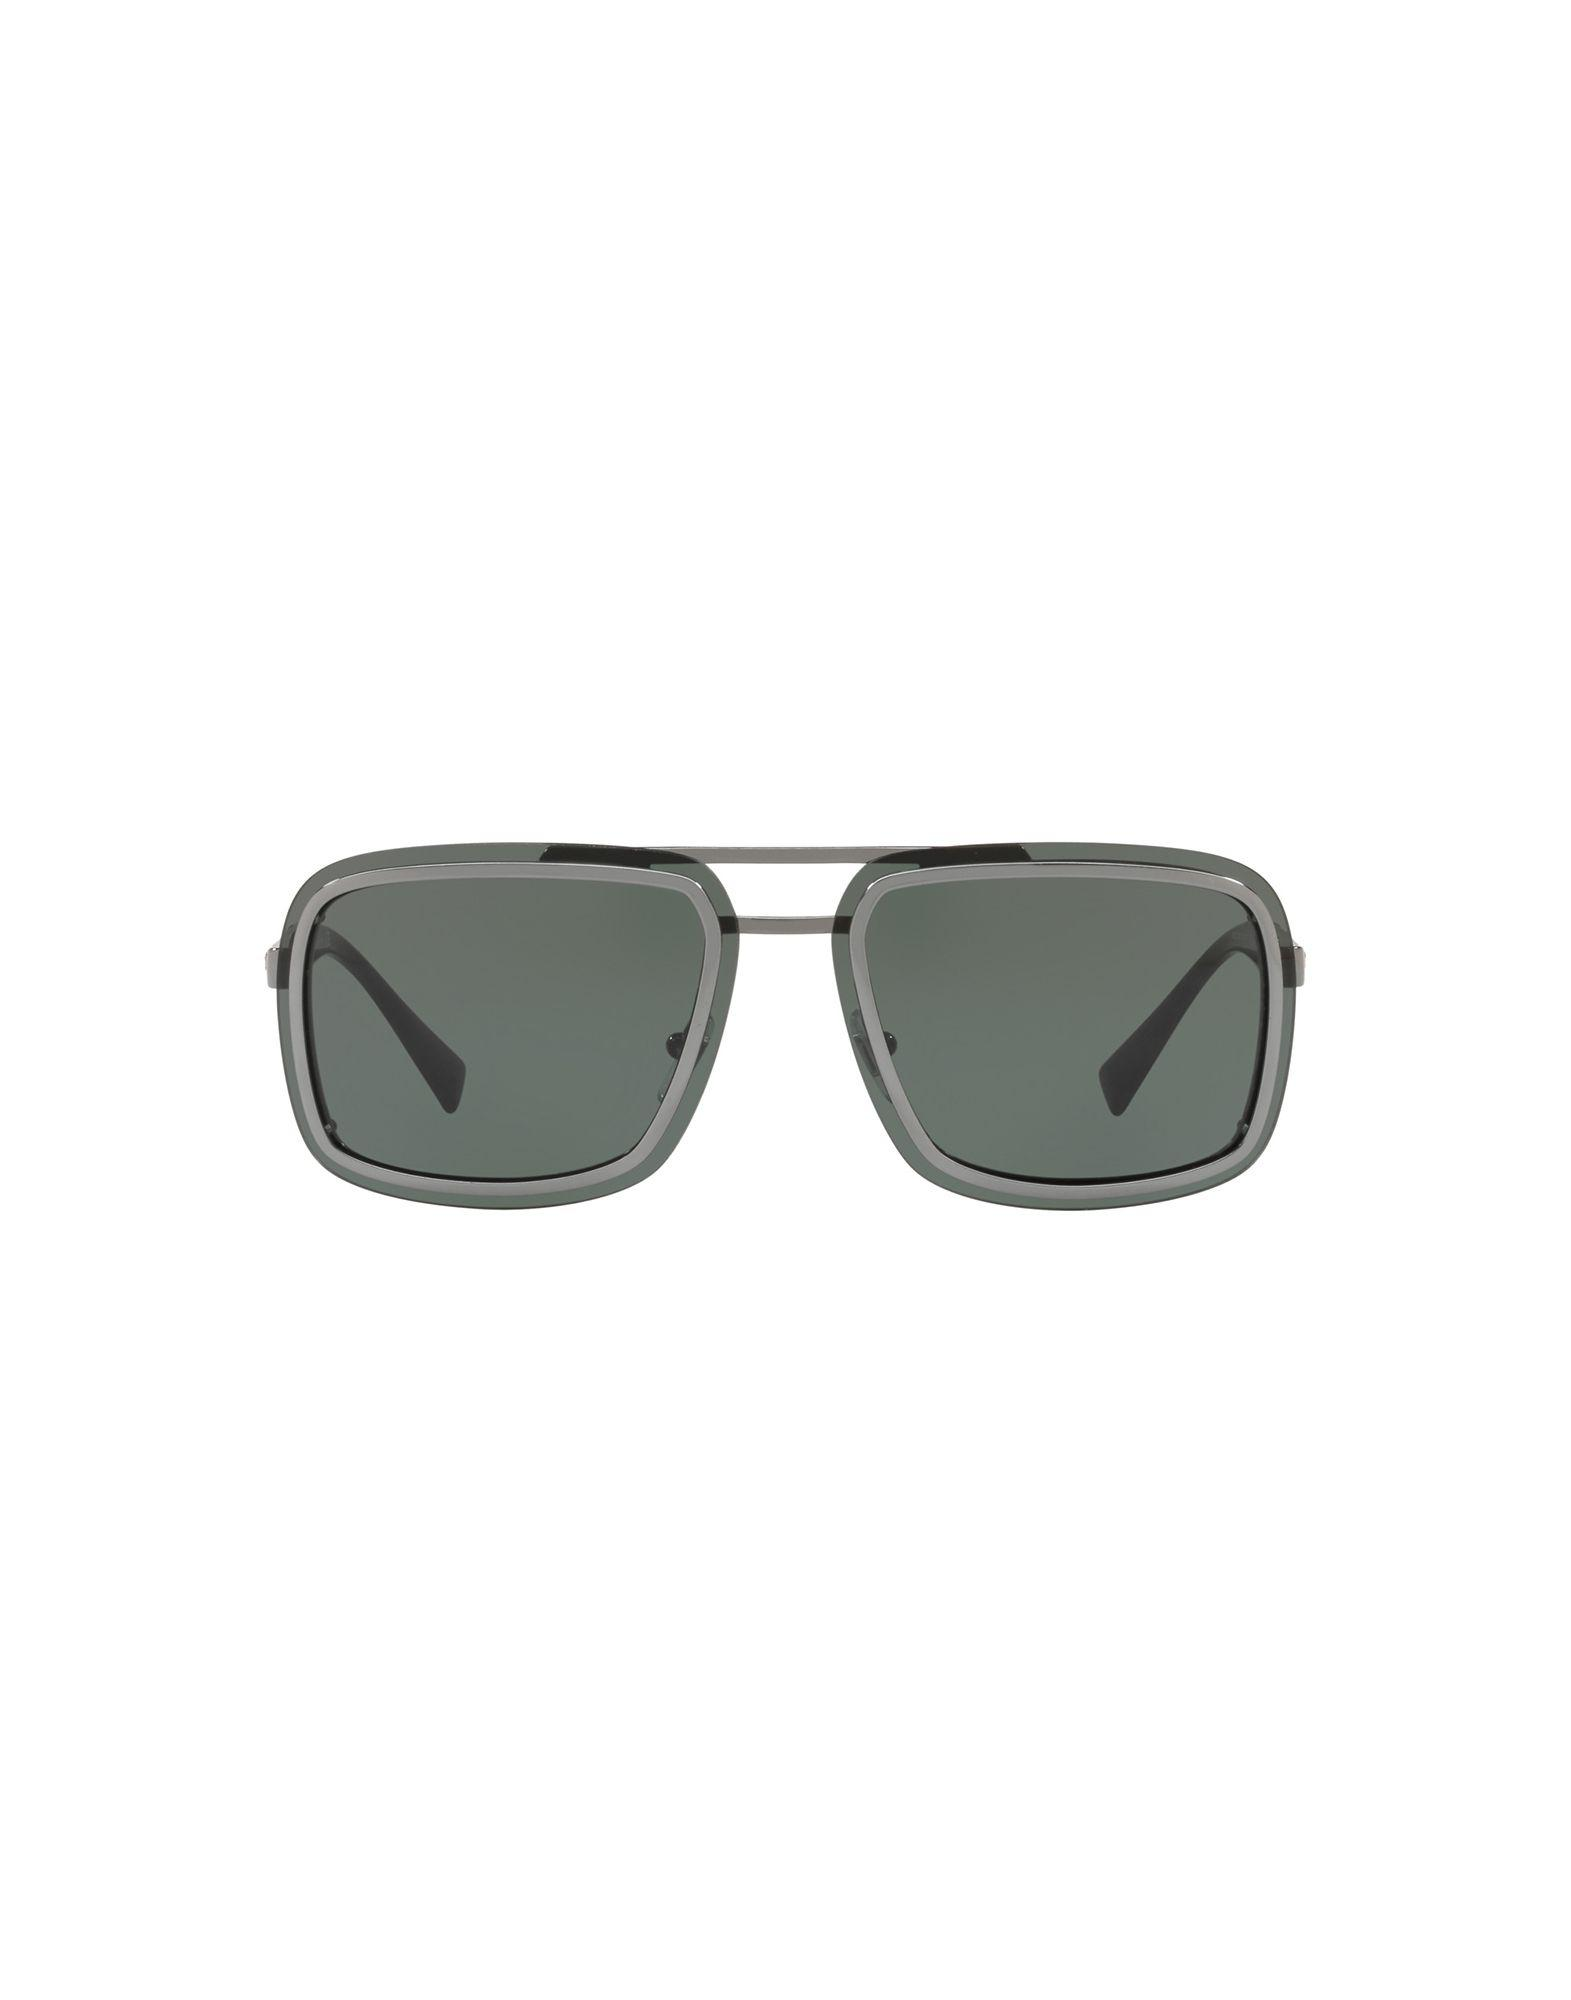 856180adfbc5 Versace Sunglasses in Metallic for Men - Lyst